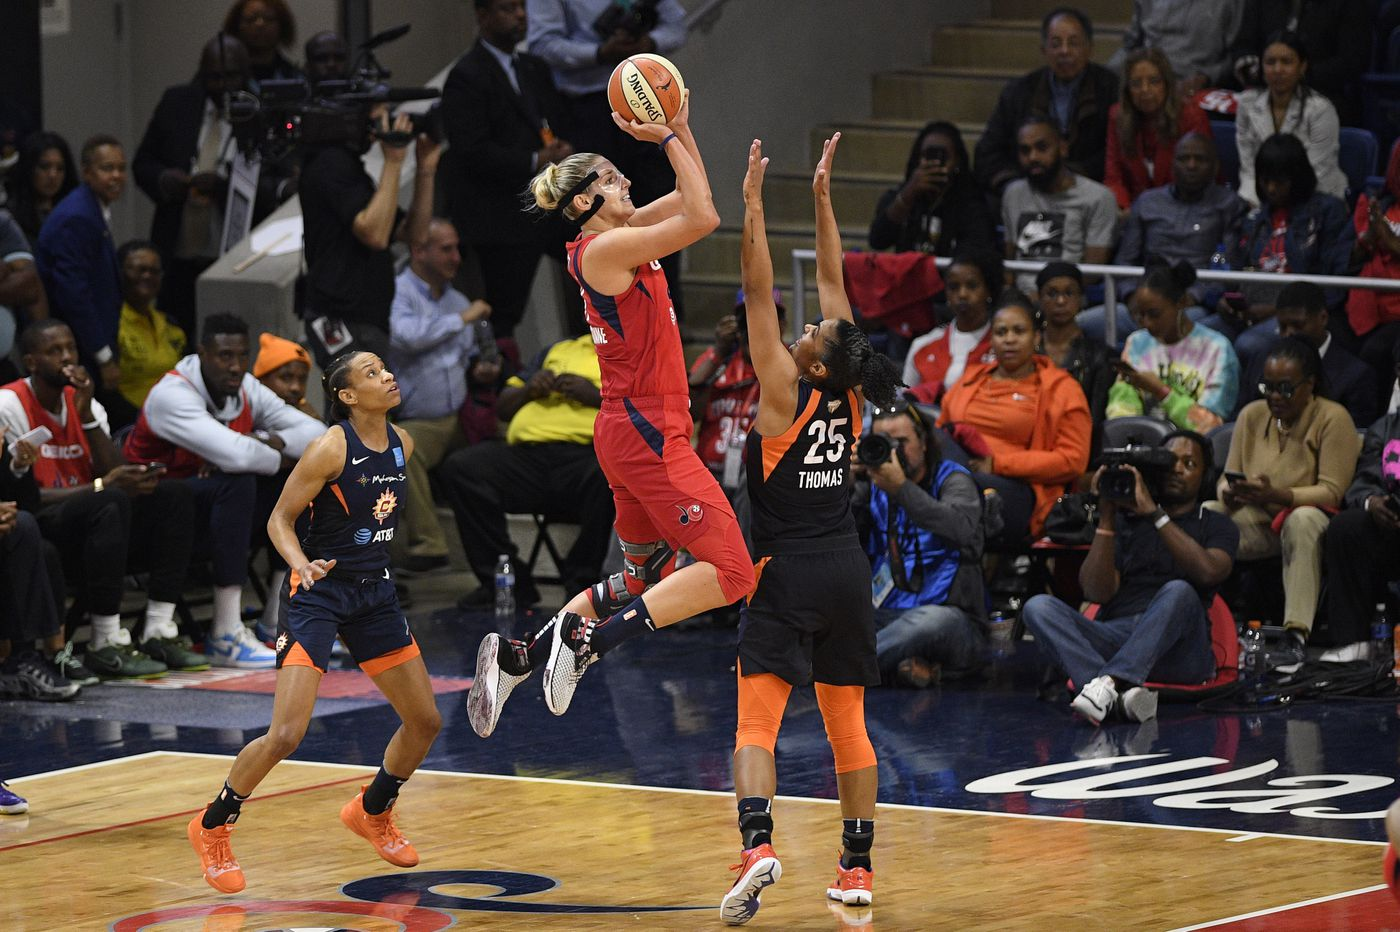 After WNBA star Elena Delle Donne's medical opt-out is denied, she faces a decision